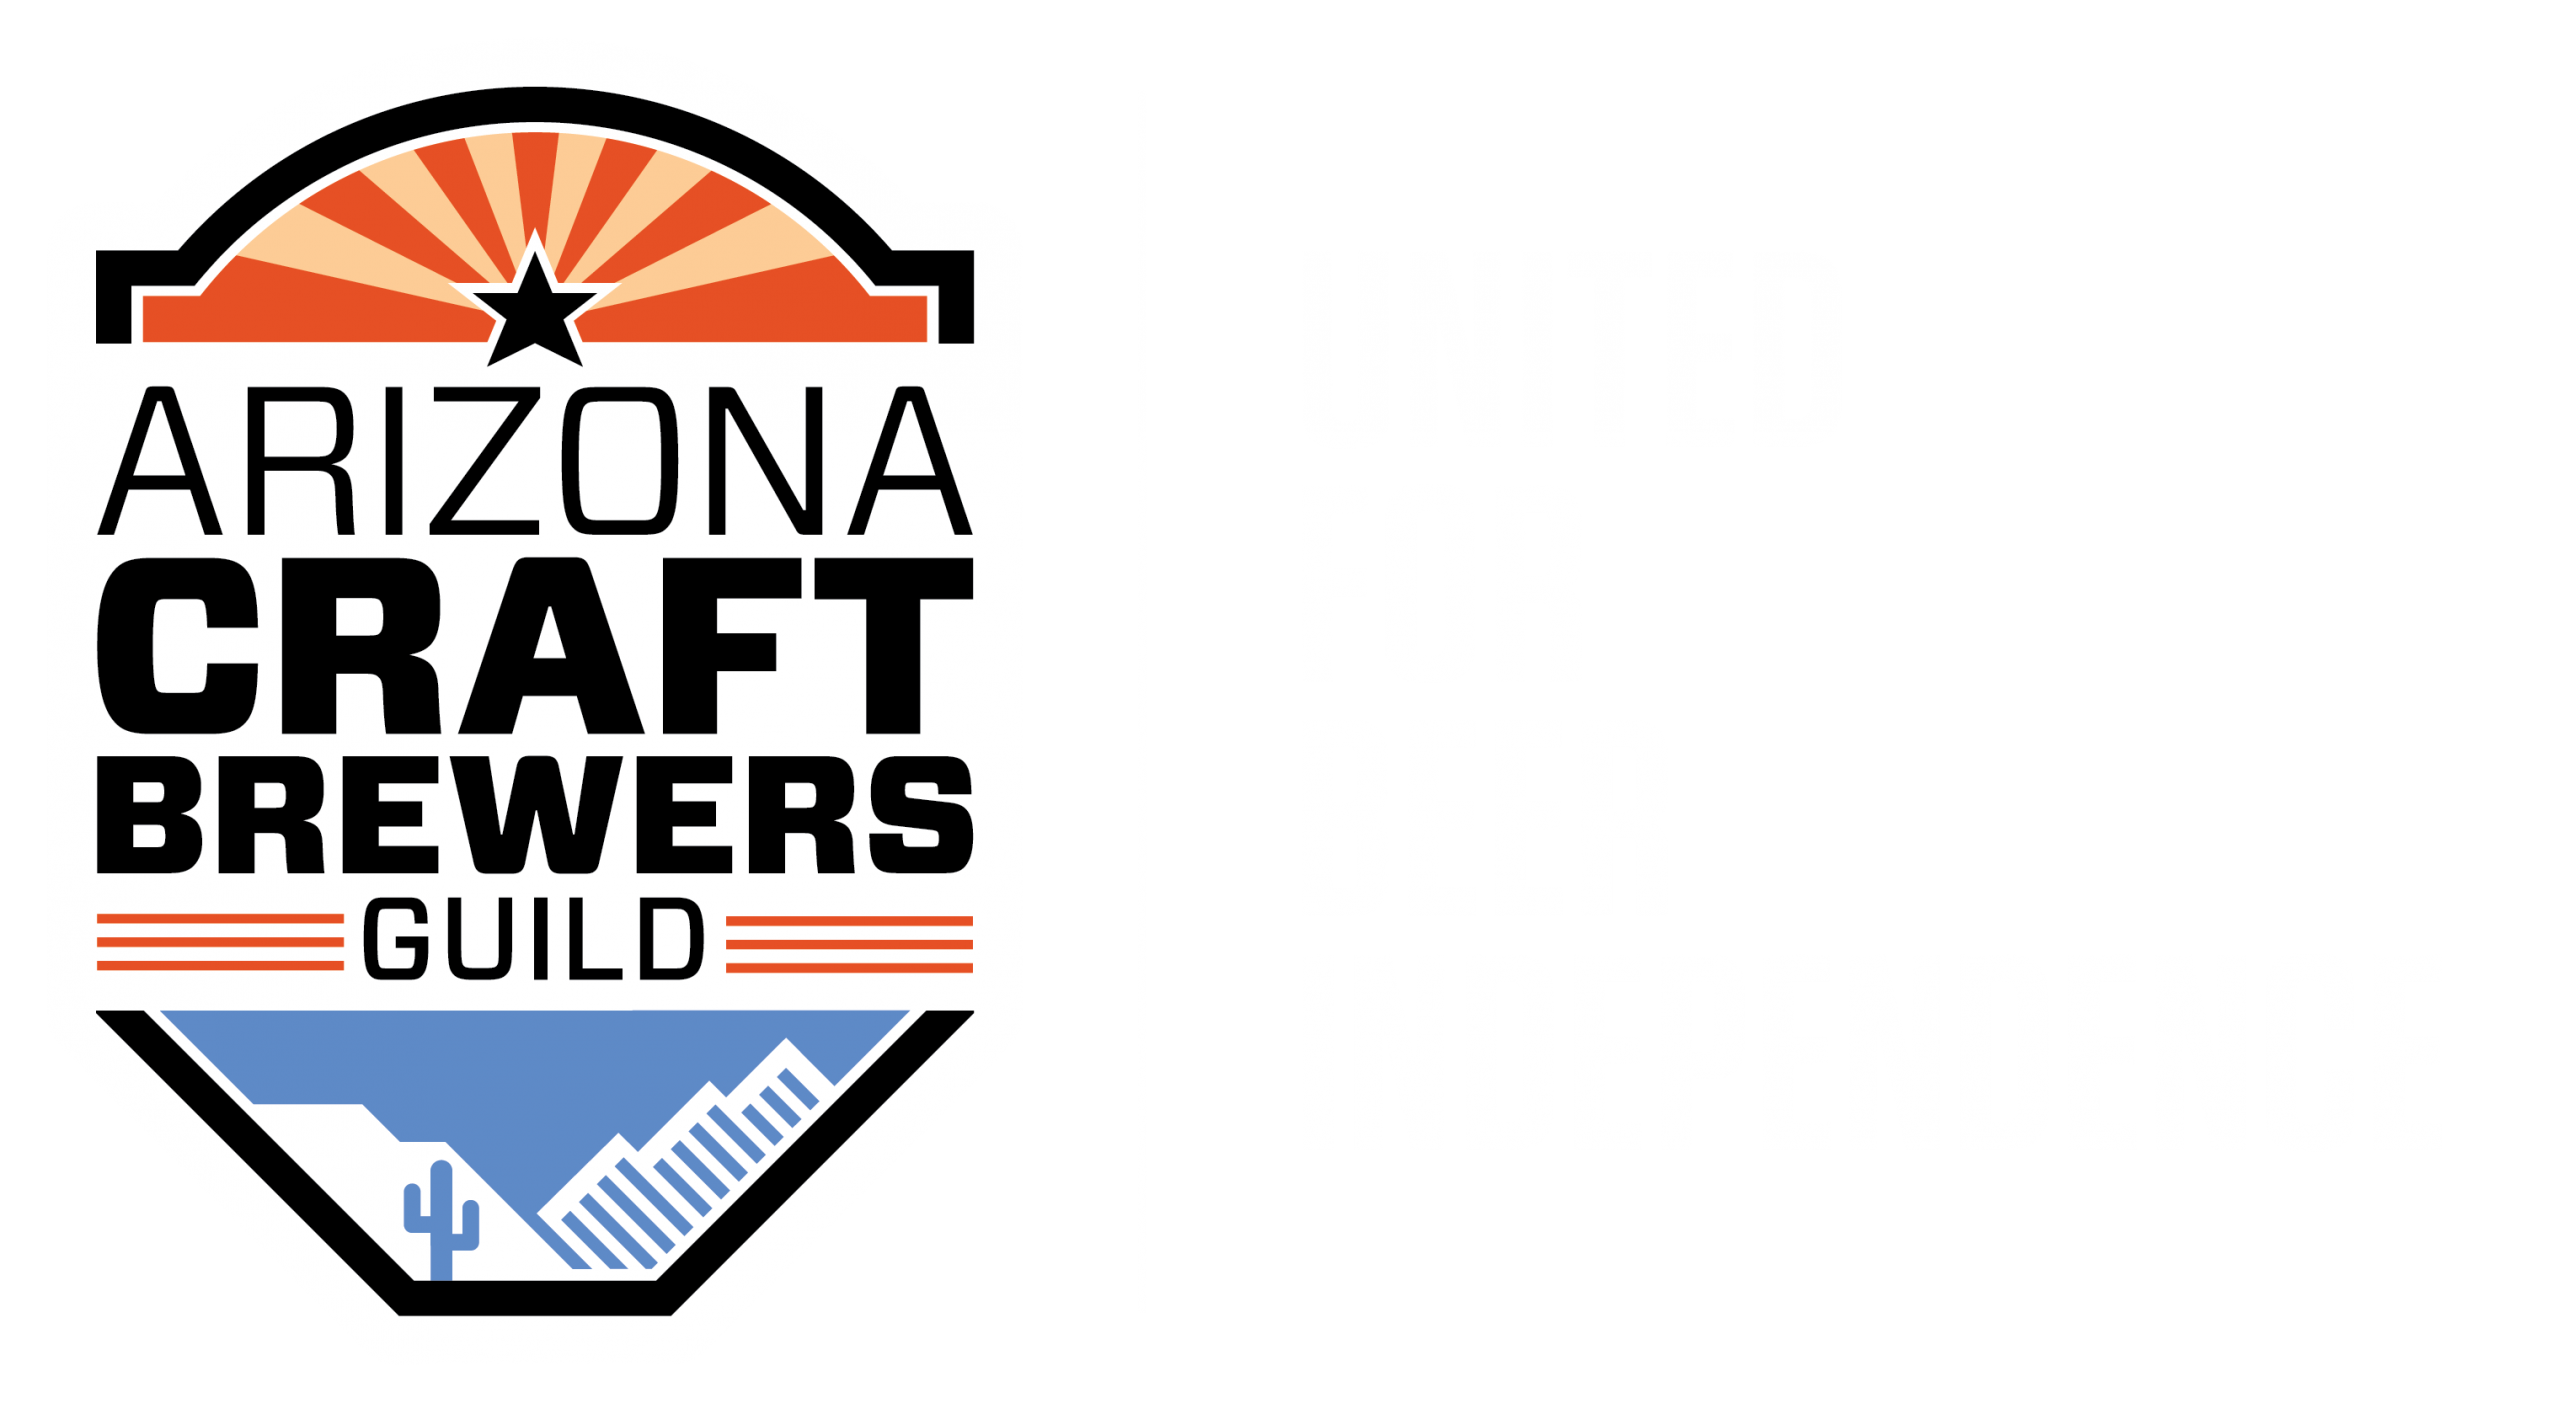 Cereus Graphics | Arizona Craft Brewers Guild